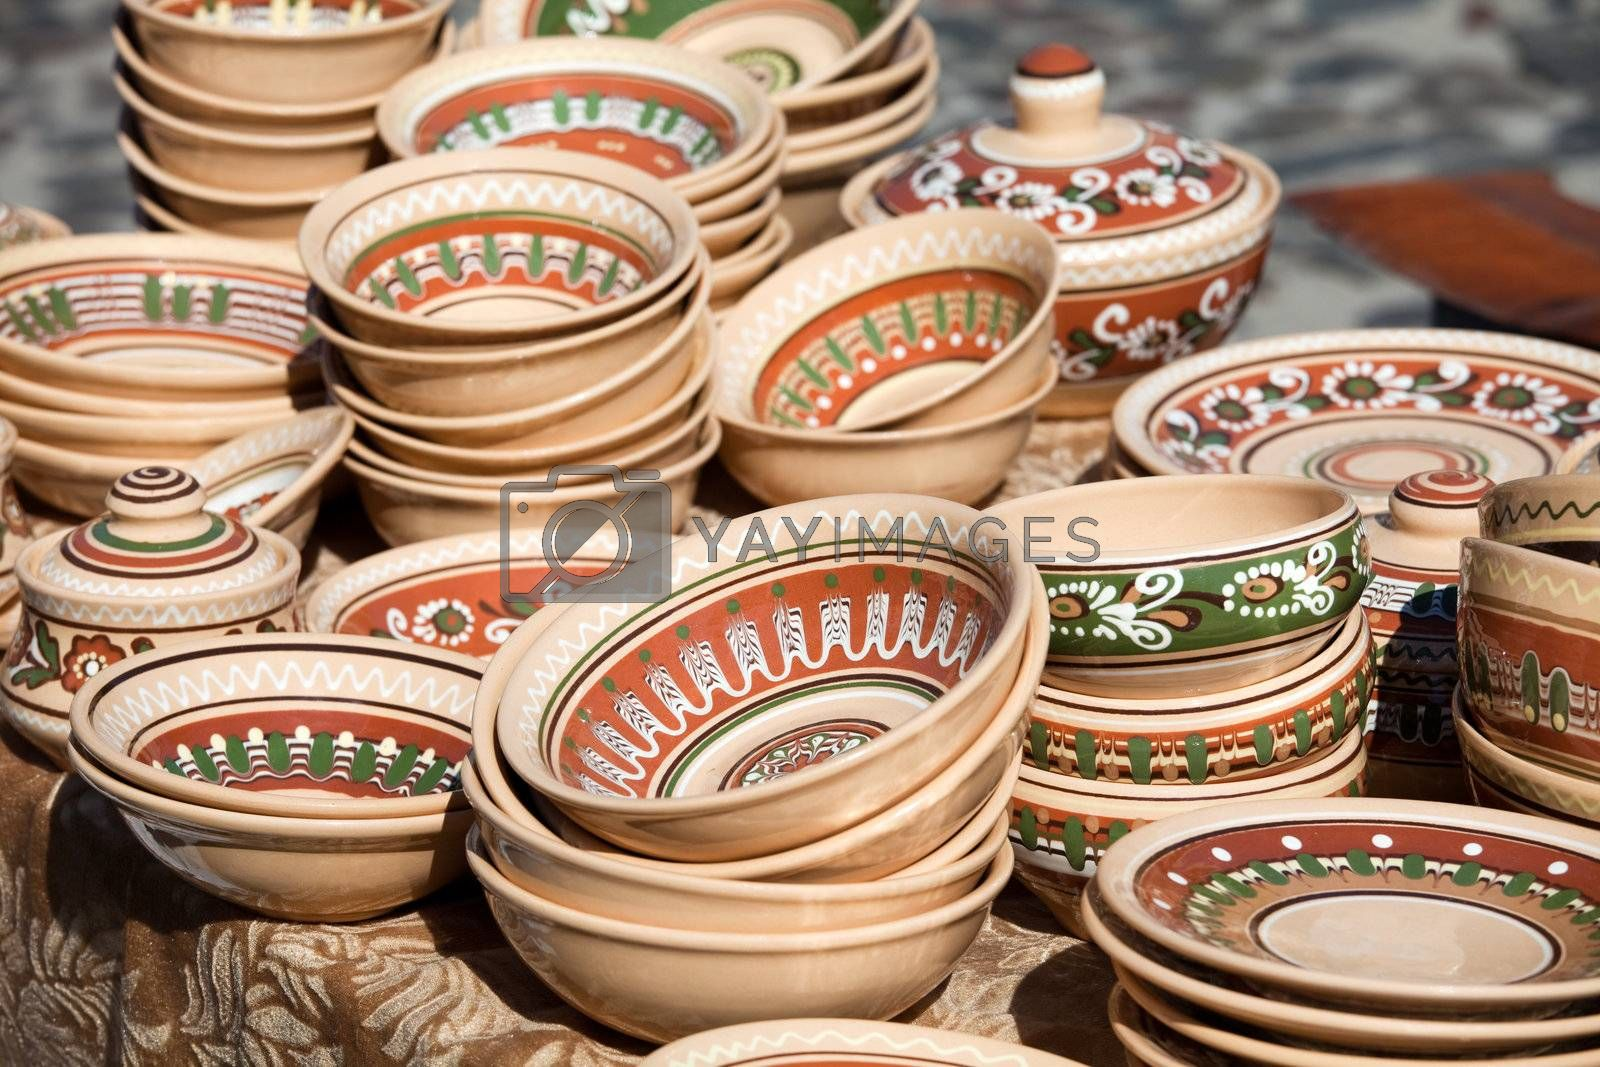 Rustic handmade ceramic and clay brown pots decorated by traditional ornament and pattern at the handicraft market